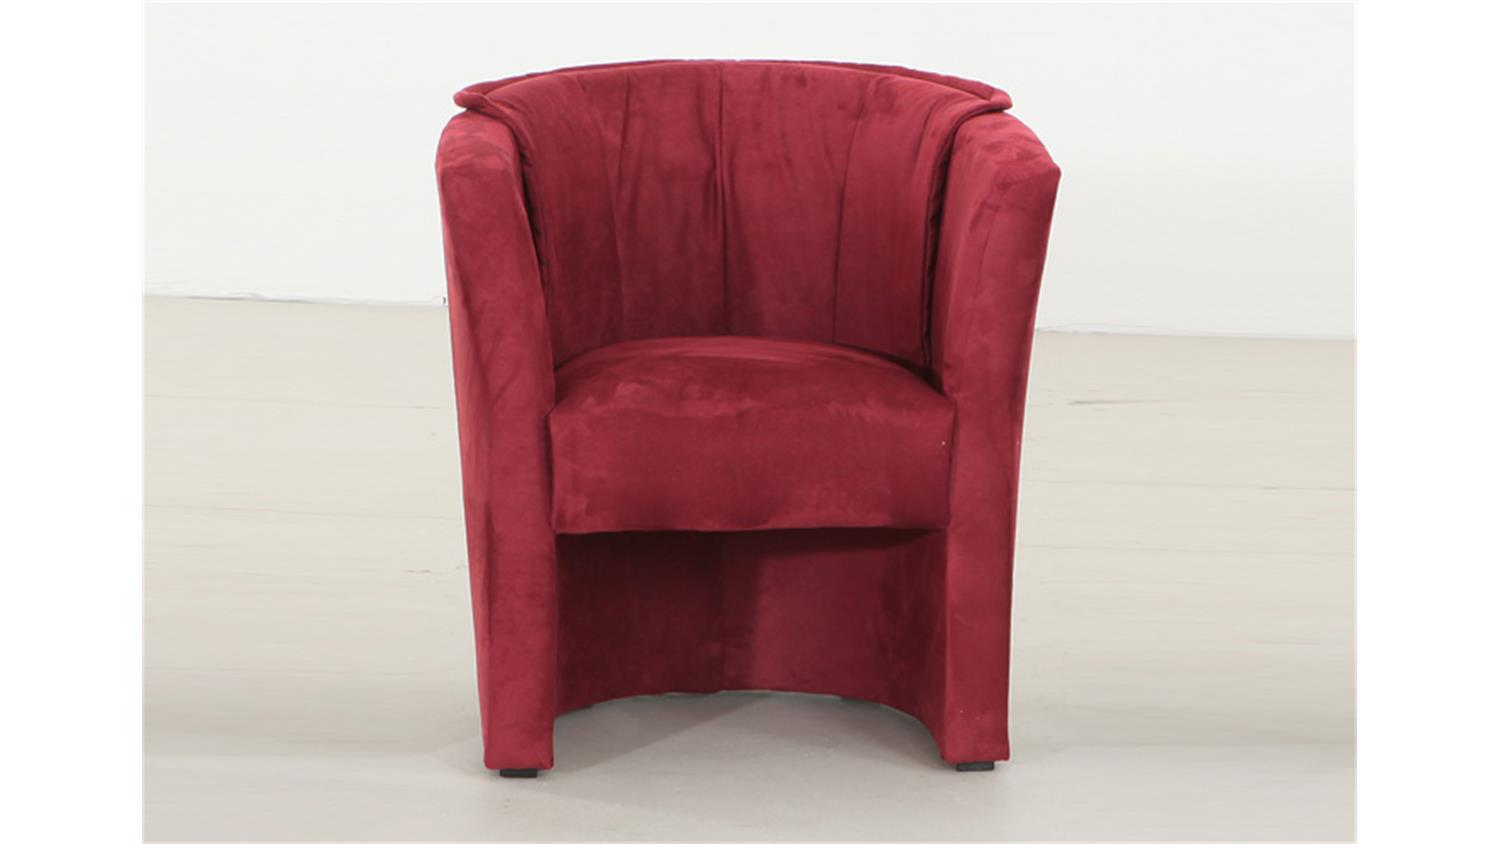 Sessel lux cocktailsessel einzelsessel in rot 75 83 67 for Sessel in rot